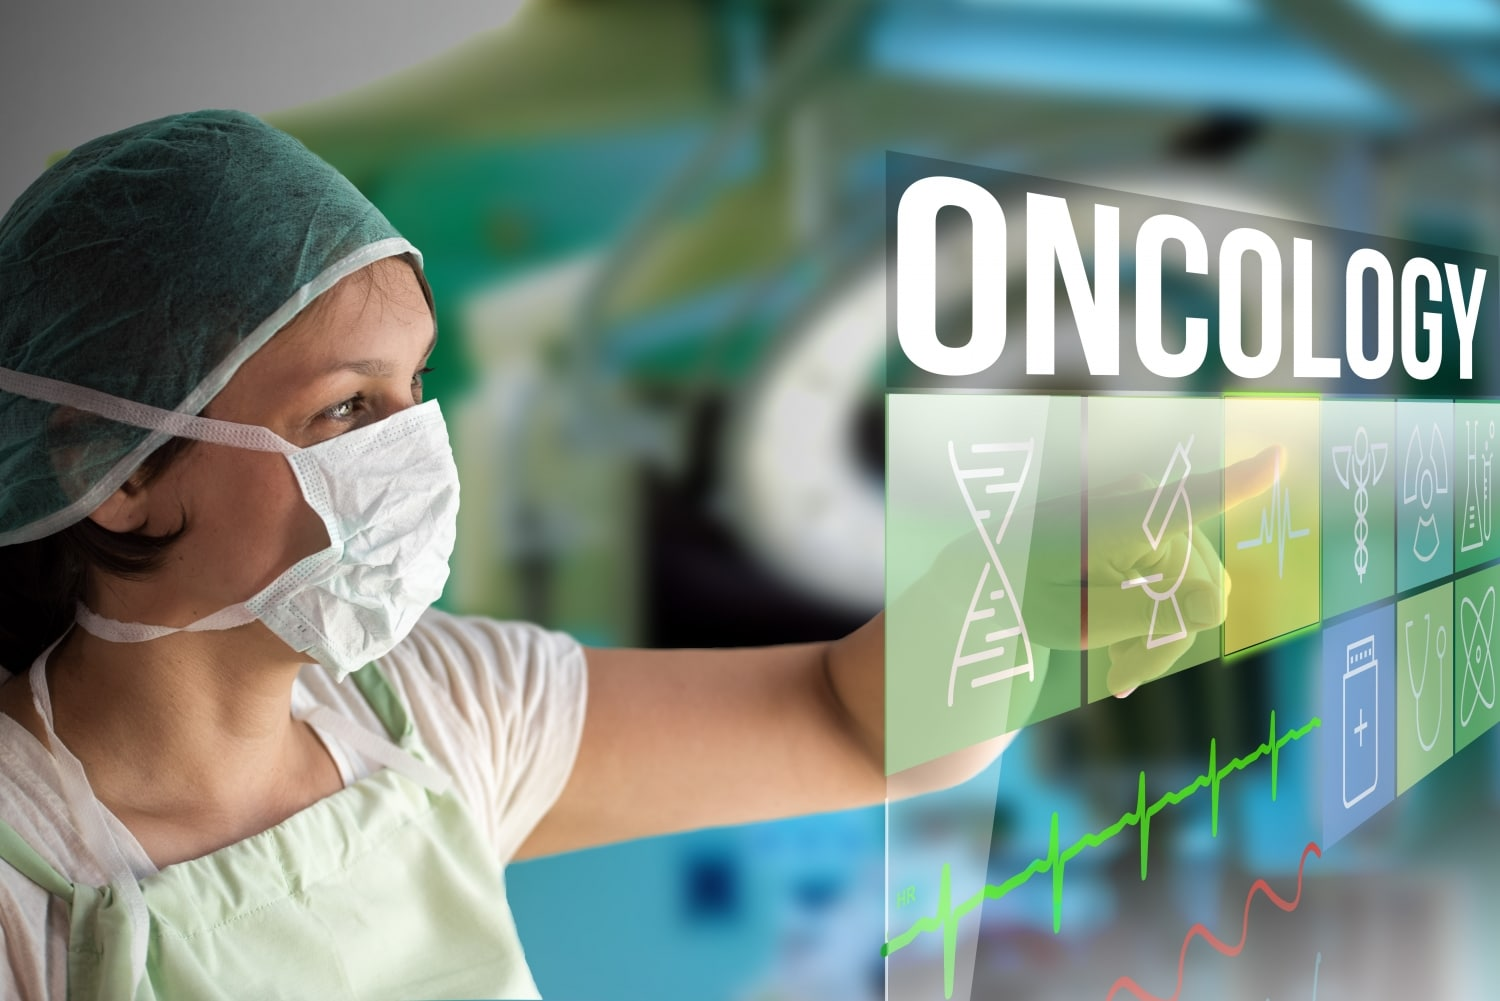 How to become an oncology nurse